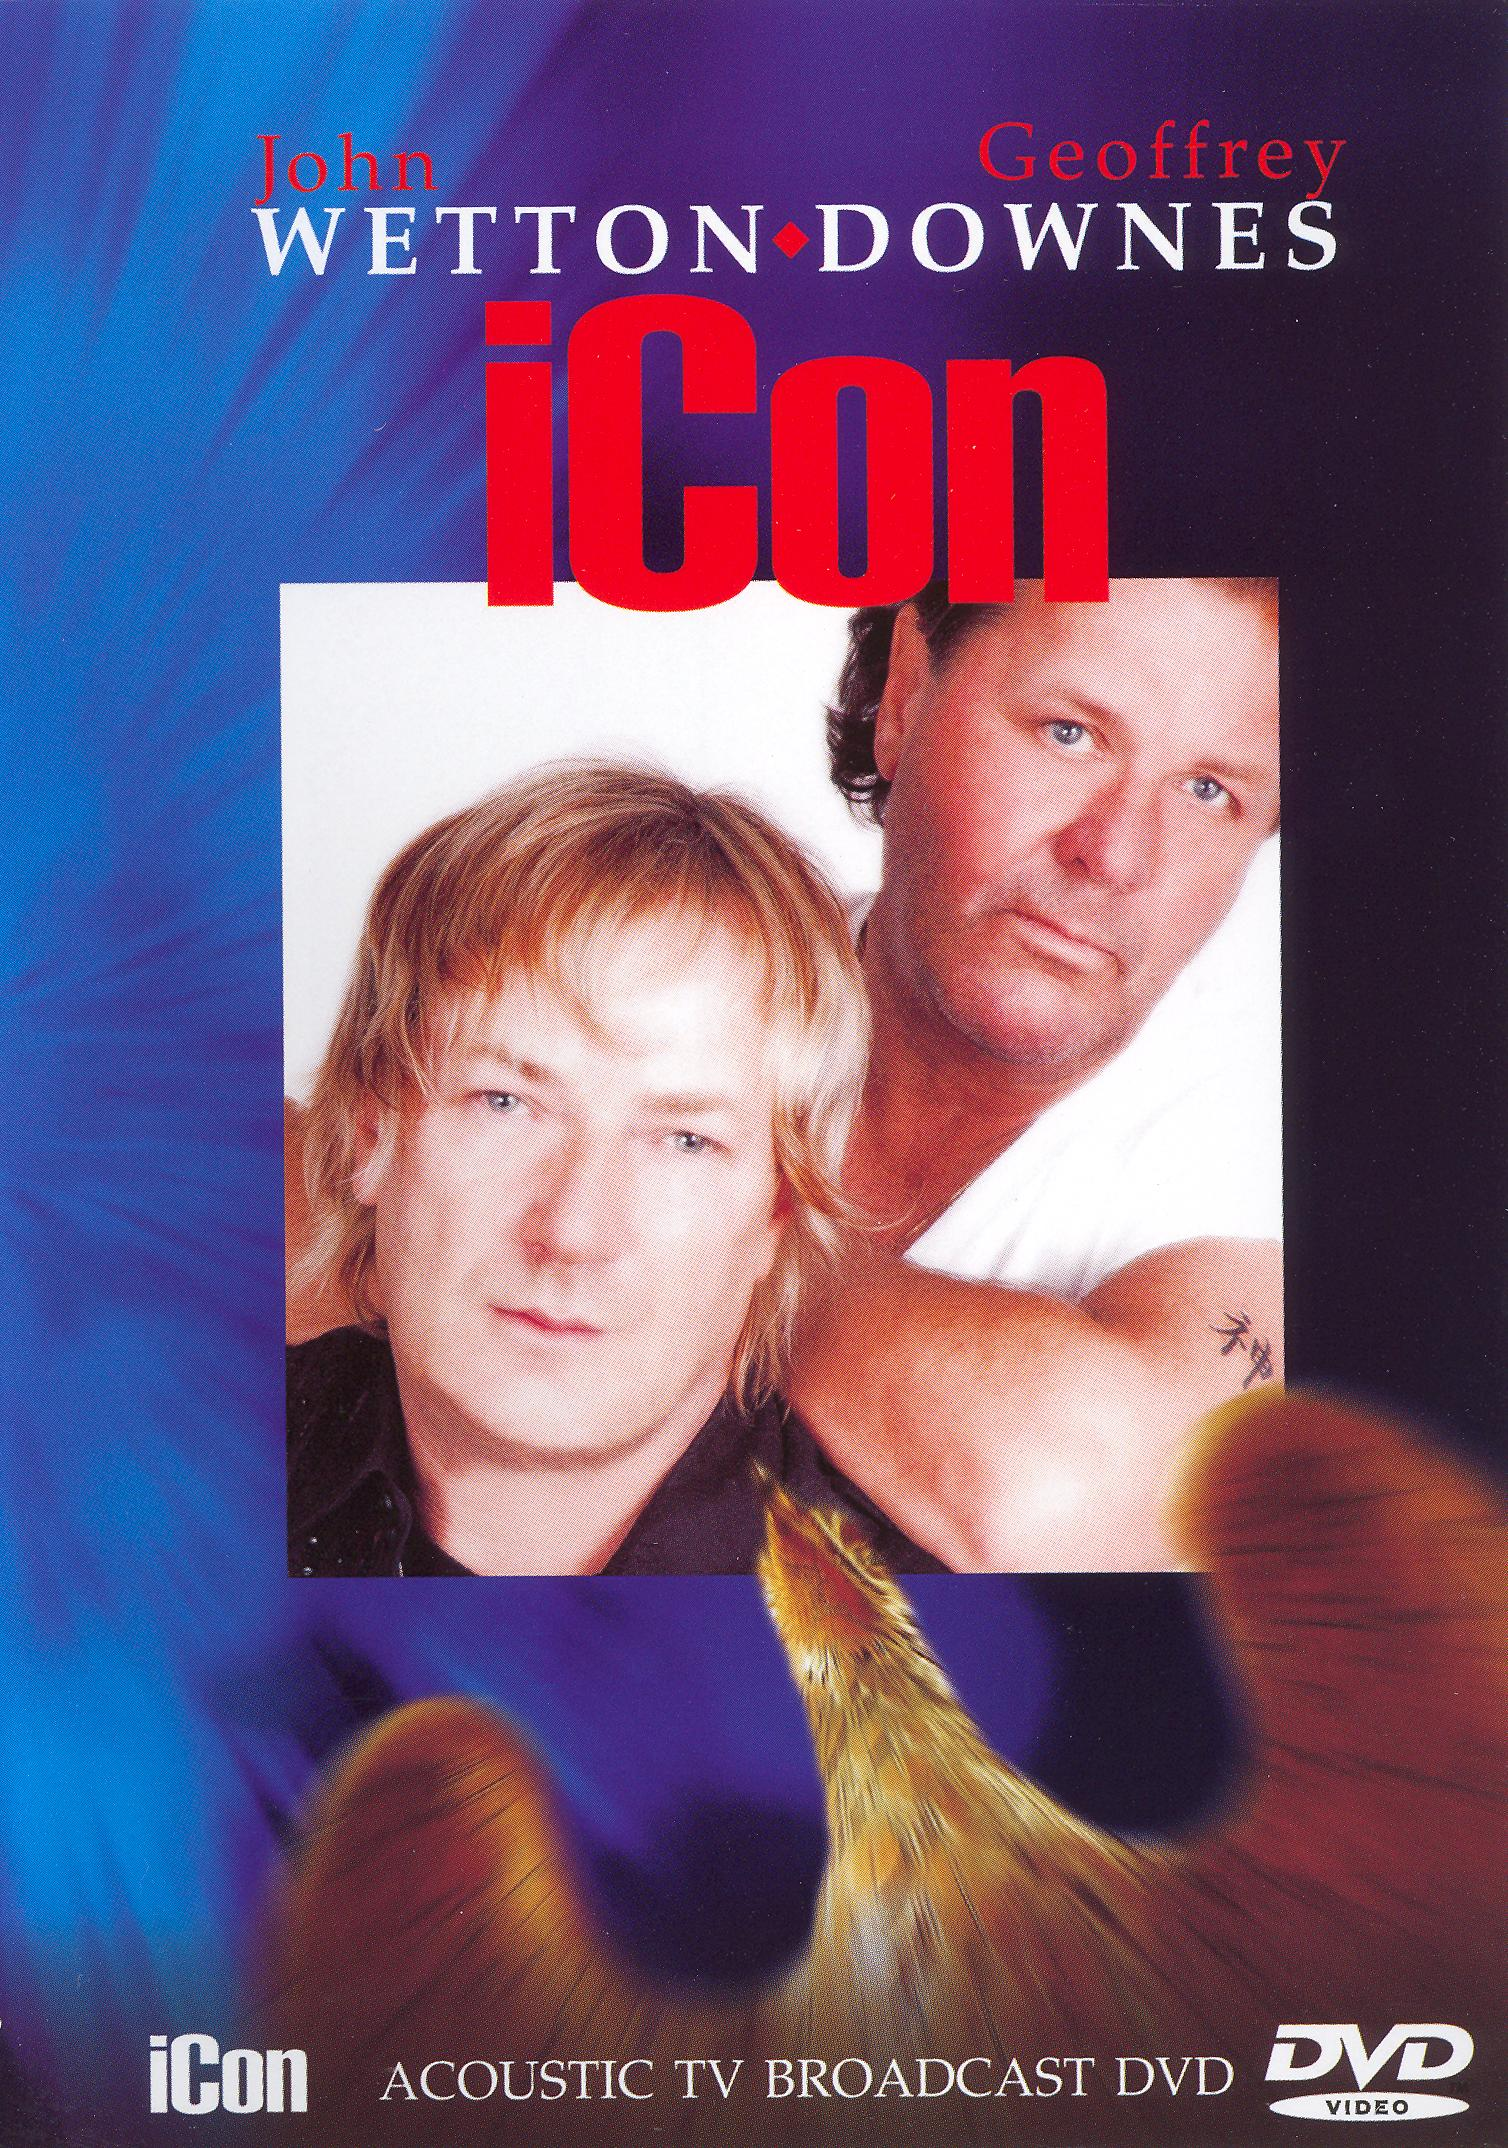 Wetton Downes: Icon - Acoustic TV Broadcast